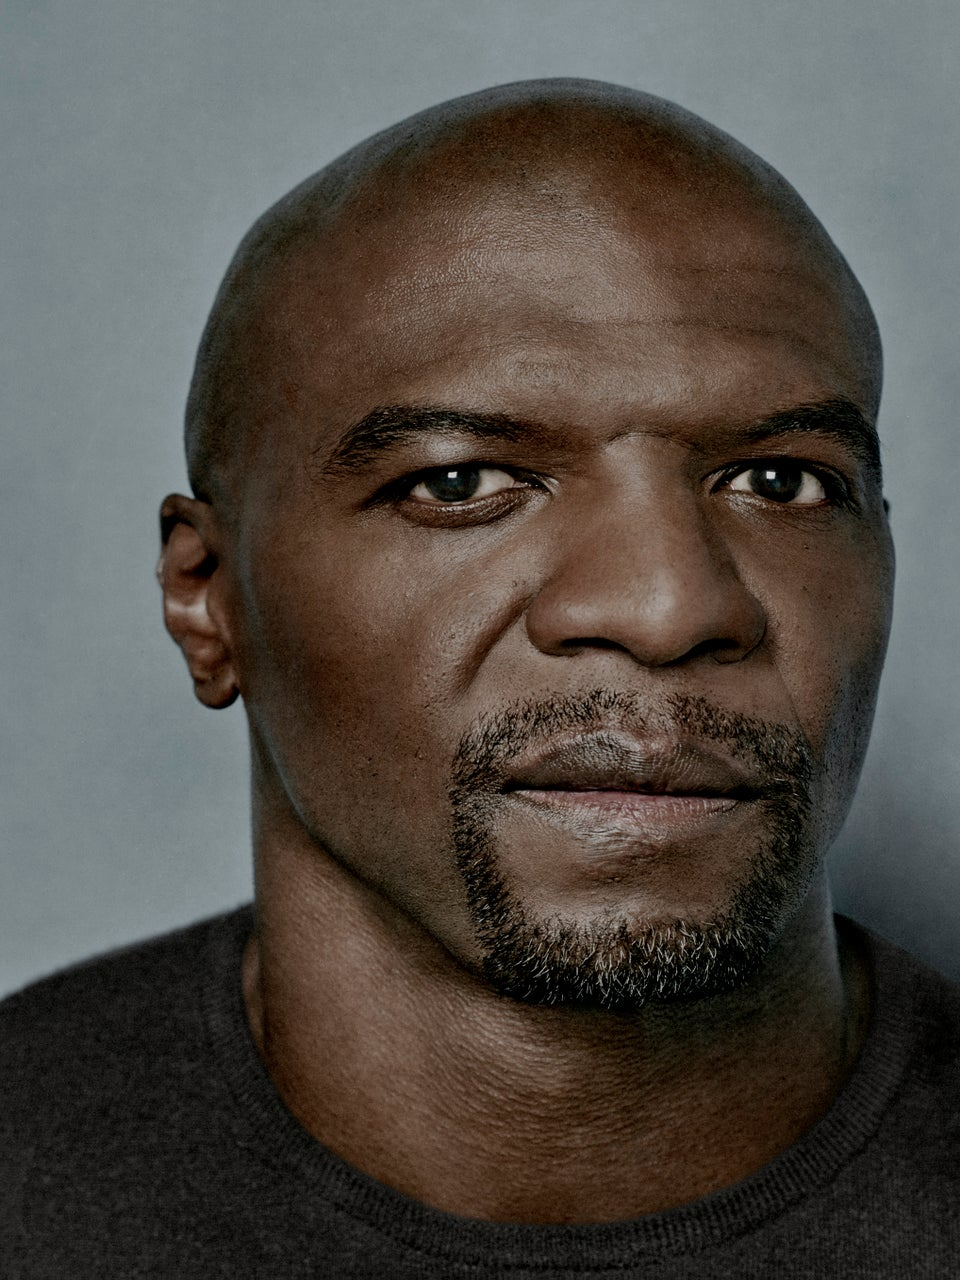 Terry Crews Speaks For All Sexual Assault Victims With This Tweet